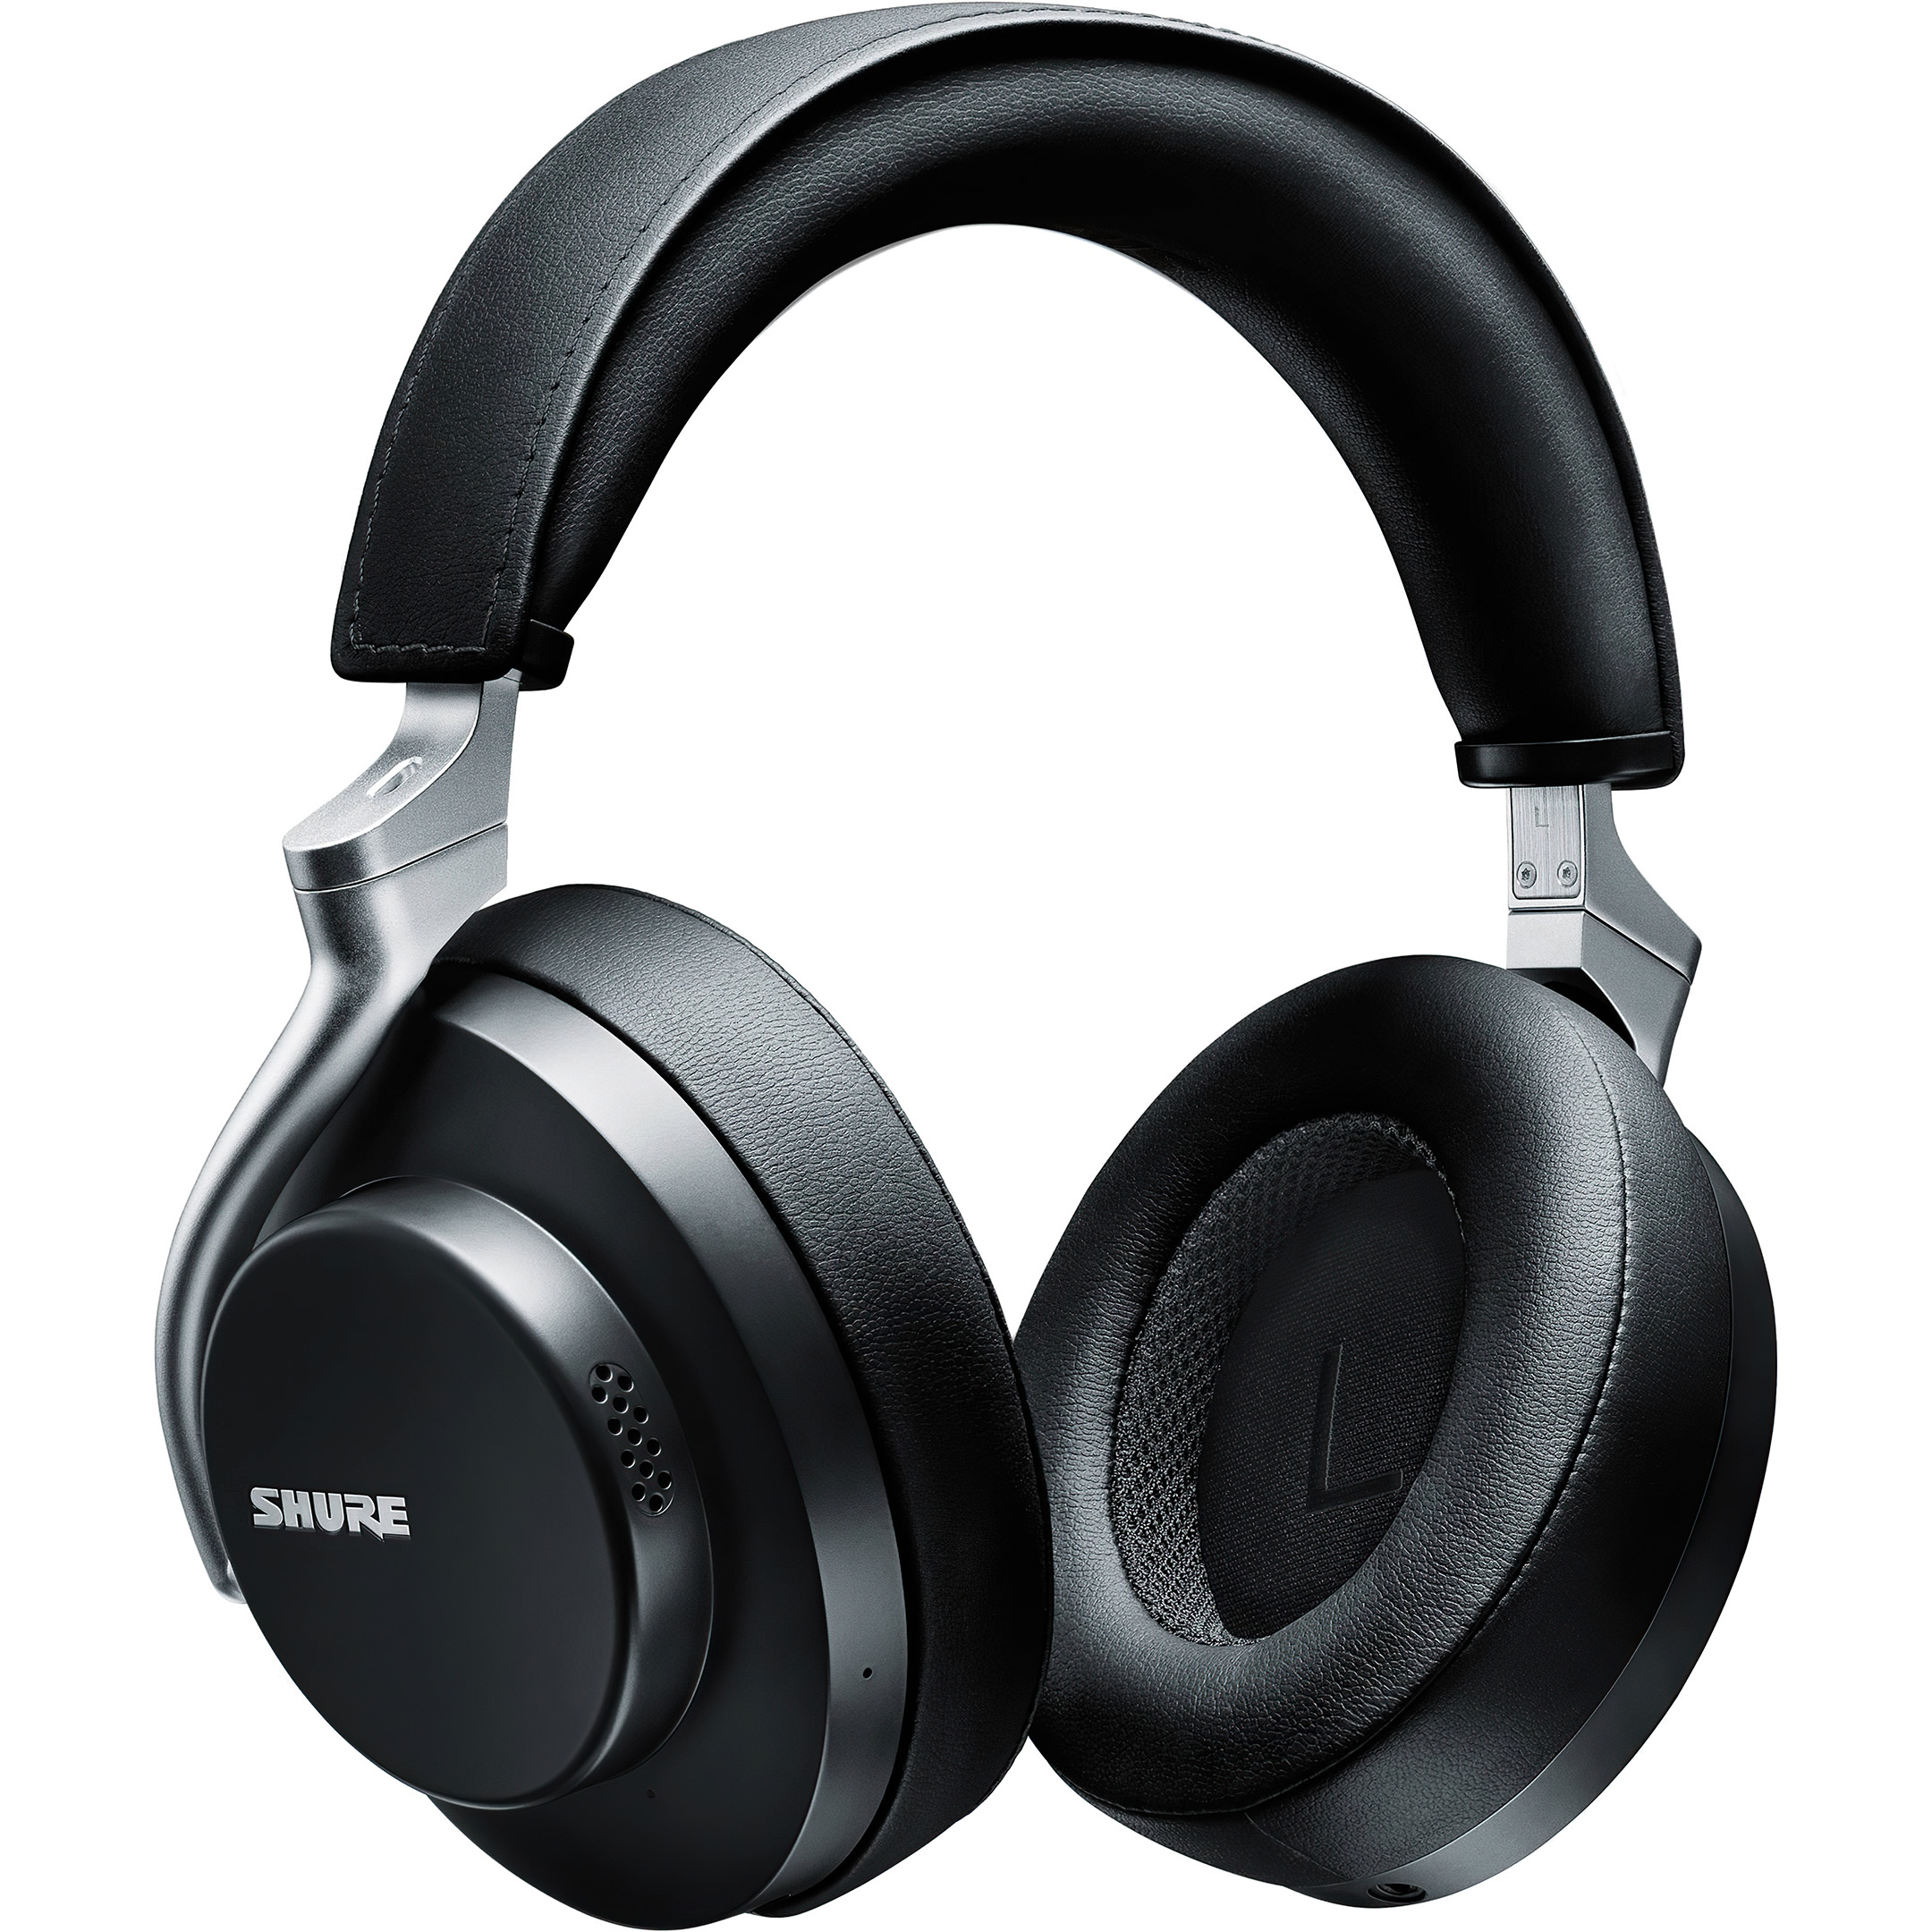 Shure AONIC 50 black